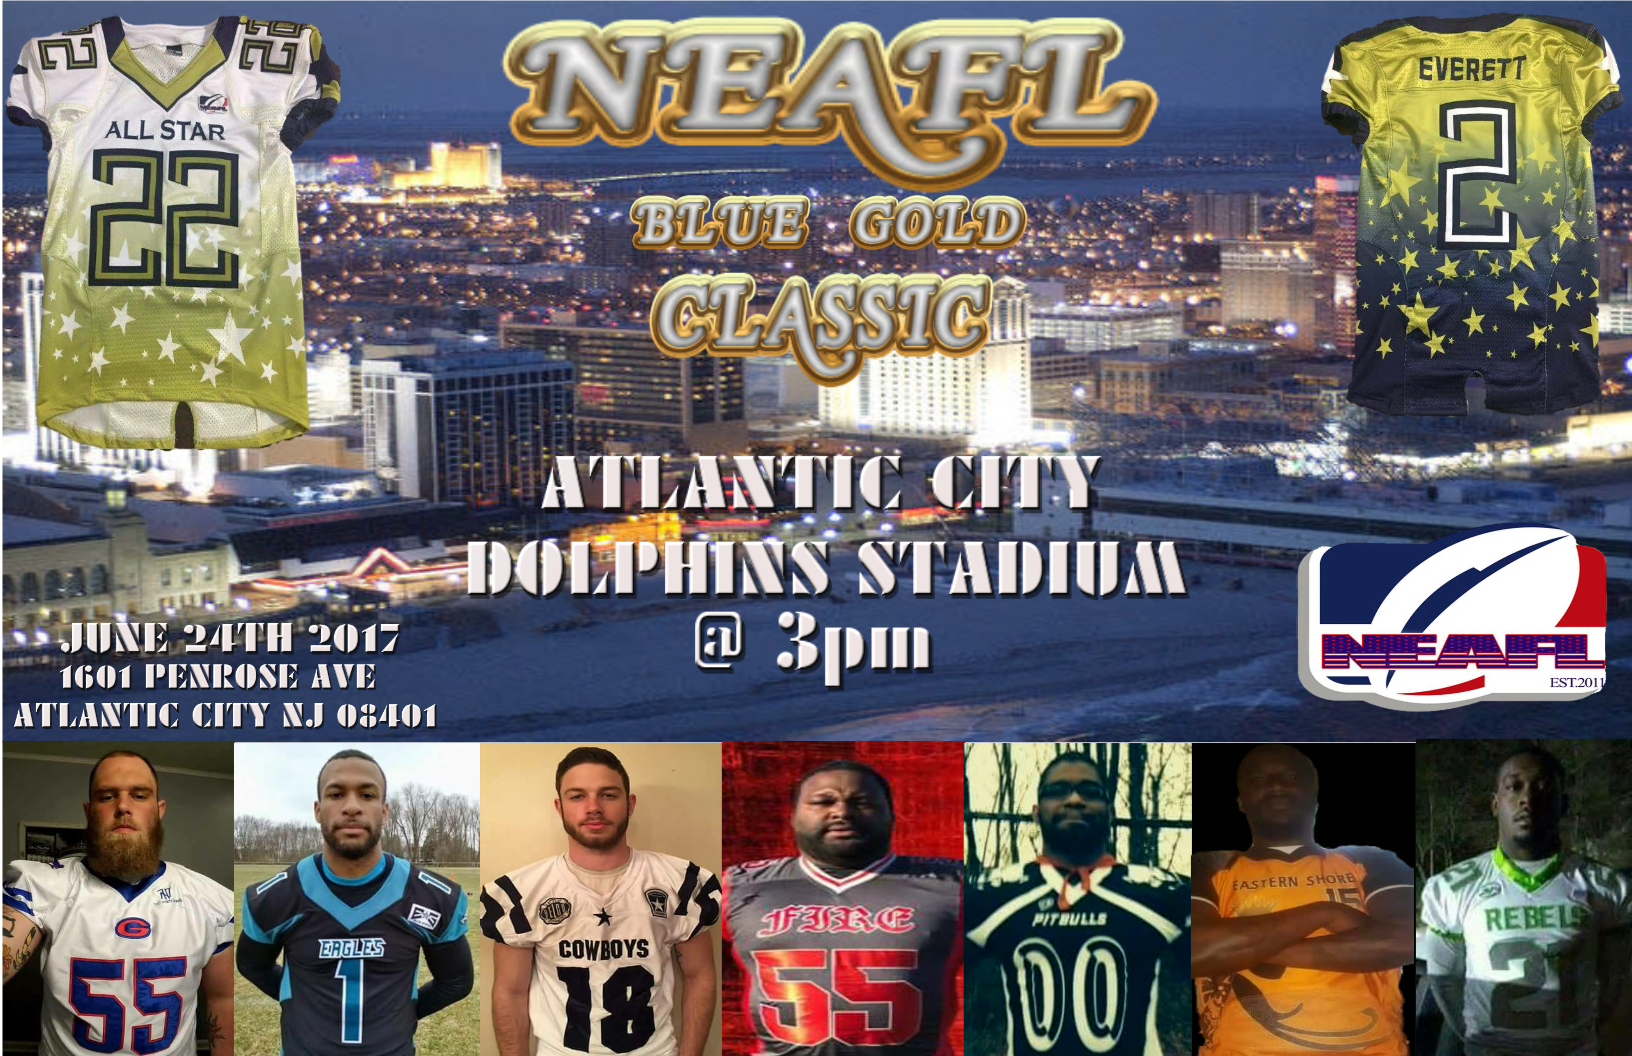 bbdcbfe91 Jordan Griffin RB of the The NEAFL BLUE GOLD CLASSIC was a succesful event  in Atlantic City